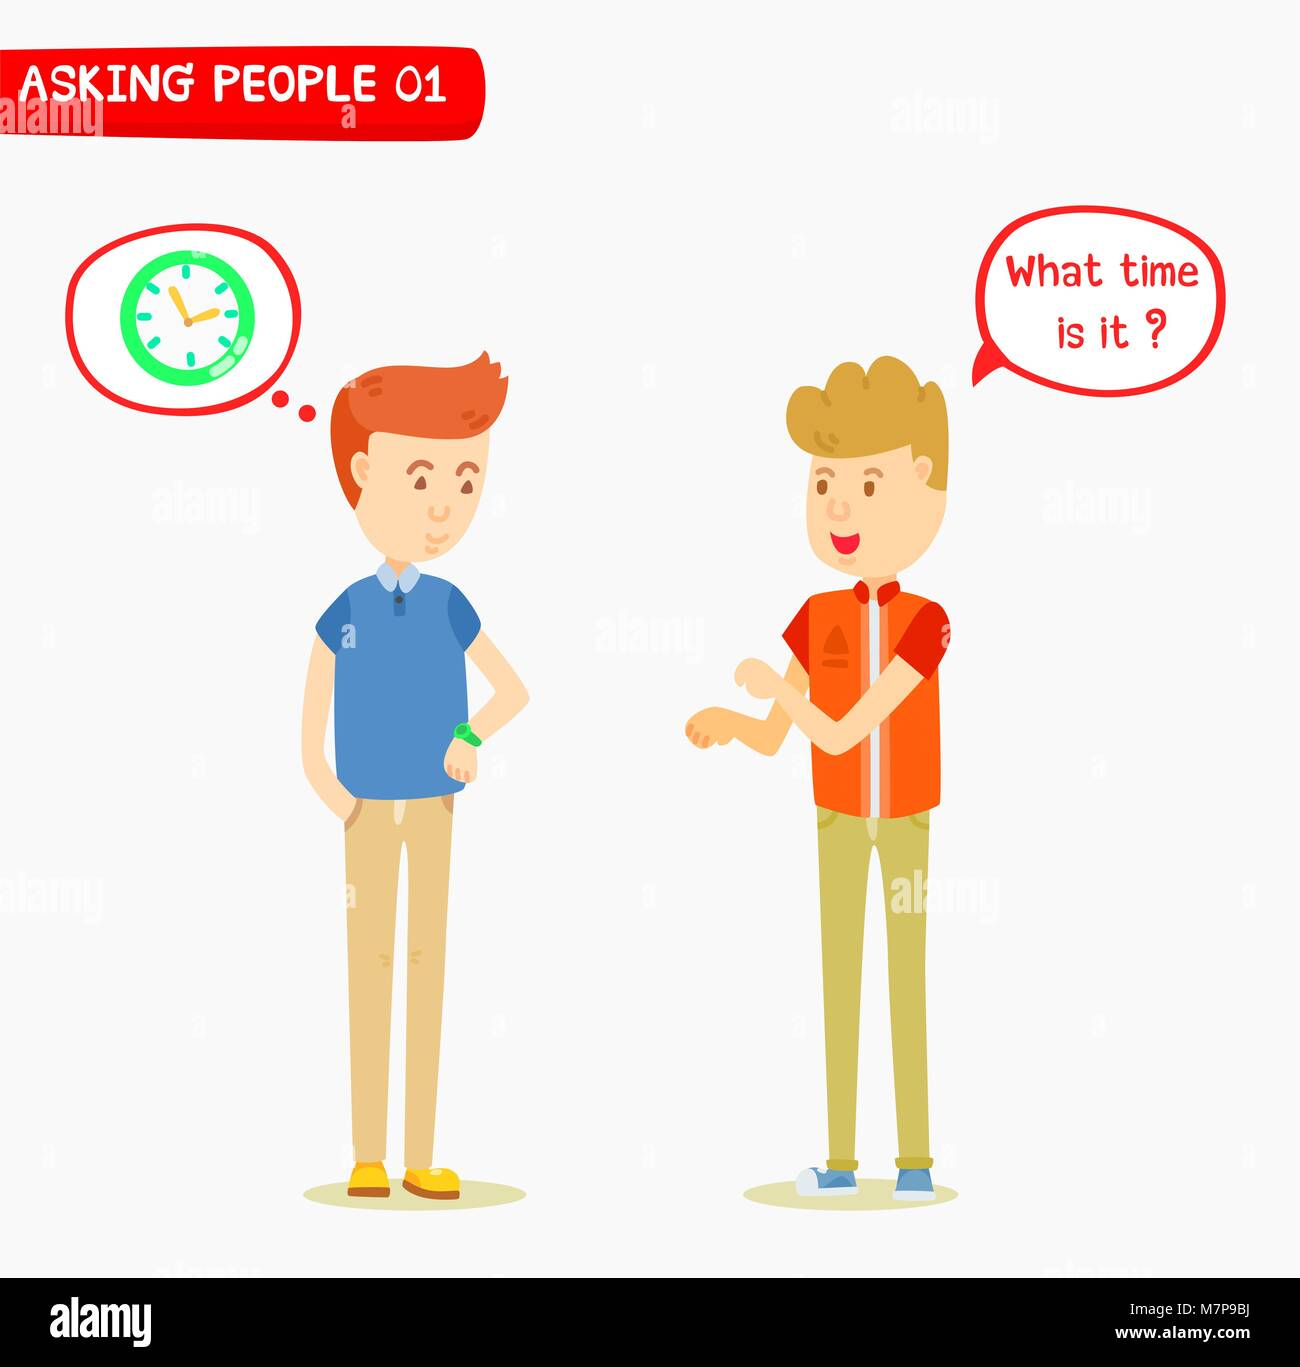 Young man ask the time to his friend, Two man talking about the time, What time is it ?, Hand gestures, Message - Stock Vector